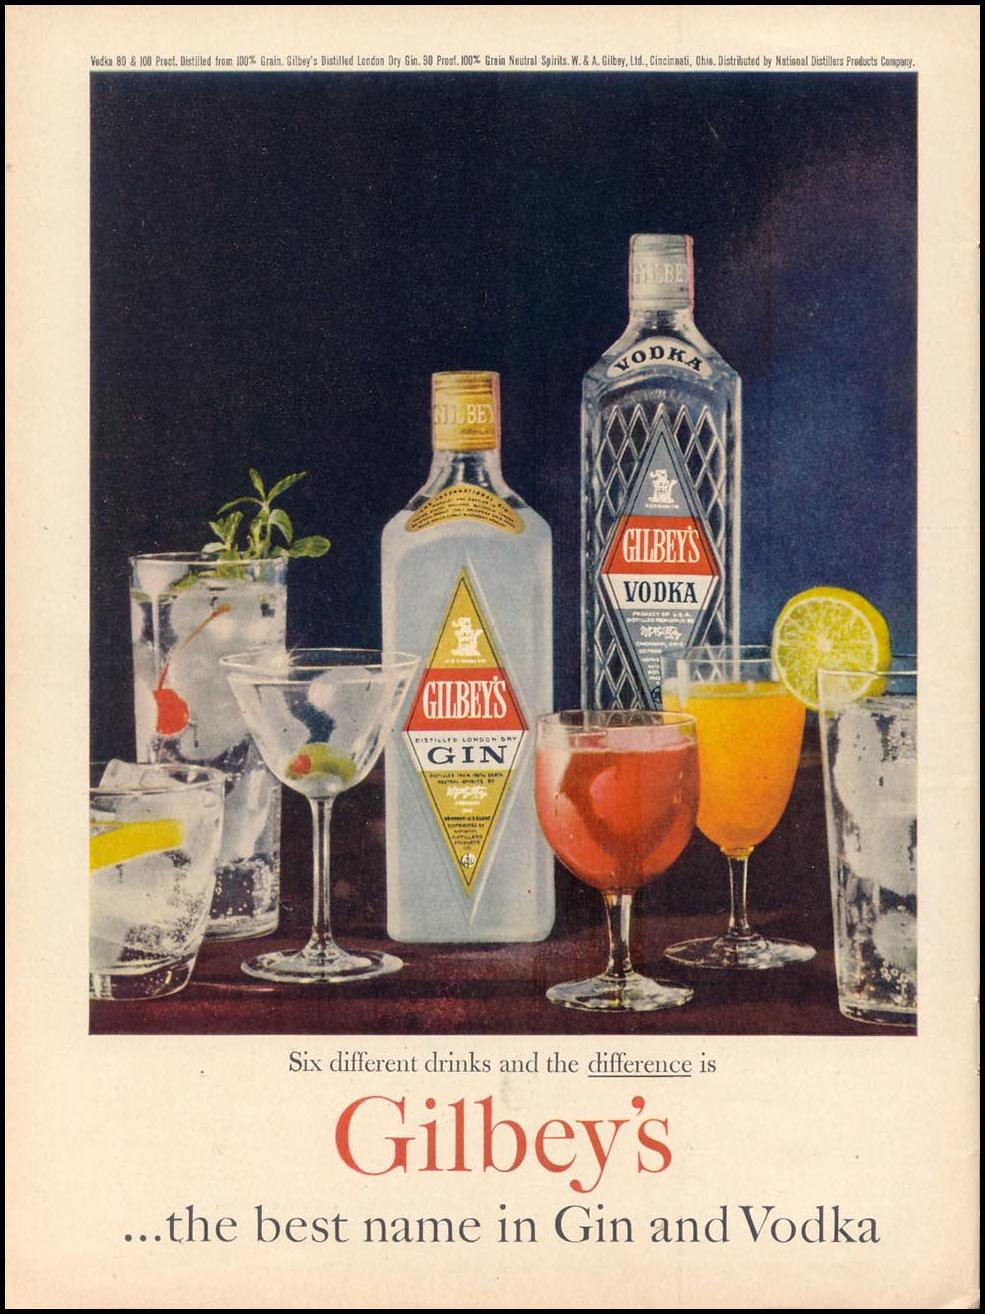 GILBEY'S GIN AND VODKA TIME 11/17/1961